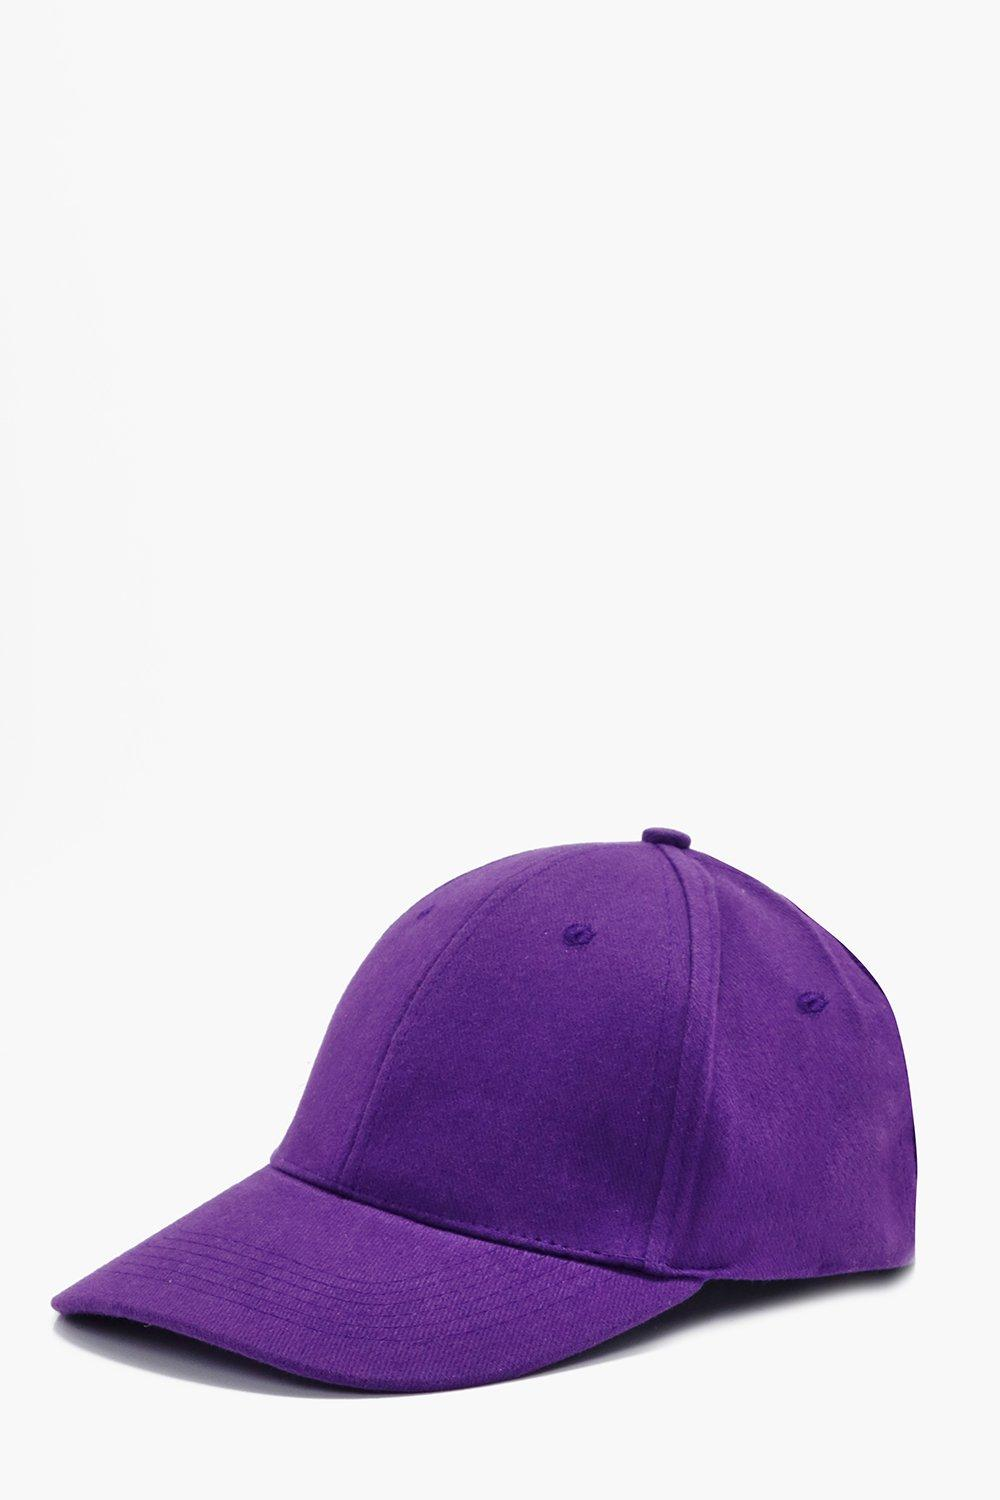 Cap - purple - Basic Cap - purple